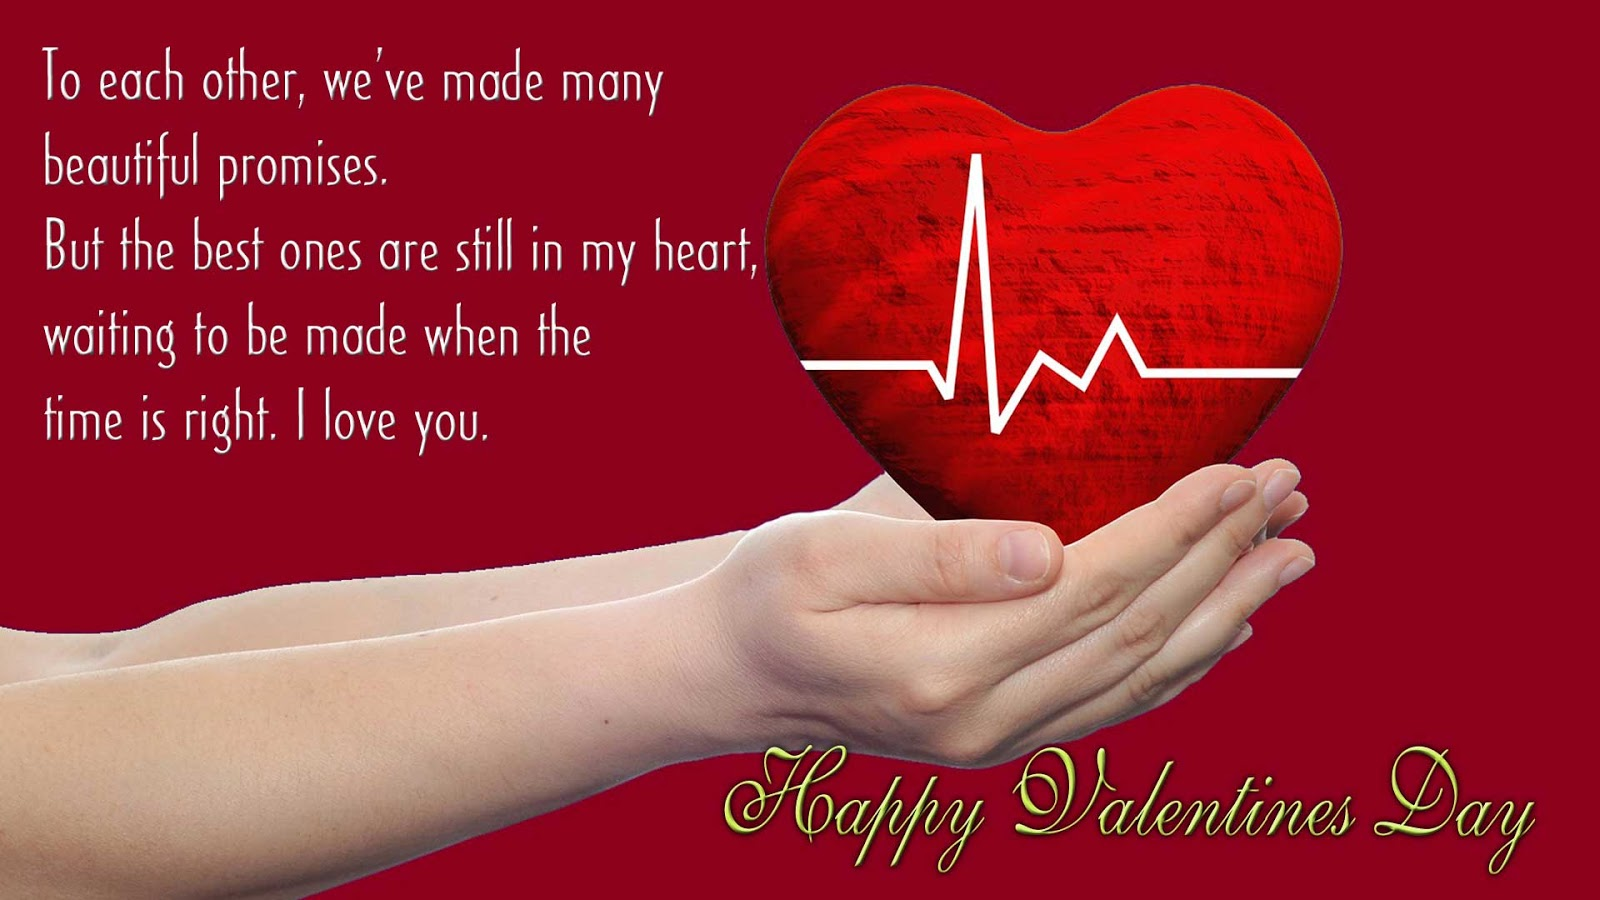 Happy Valentines Day Quotes For Wife Happy Valentines Day Quotes 2017